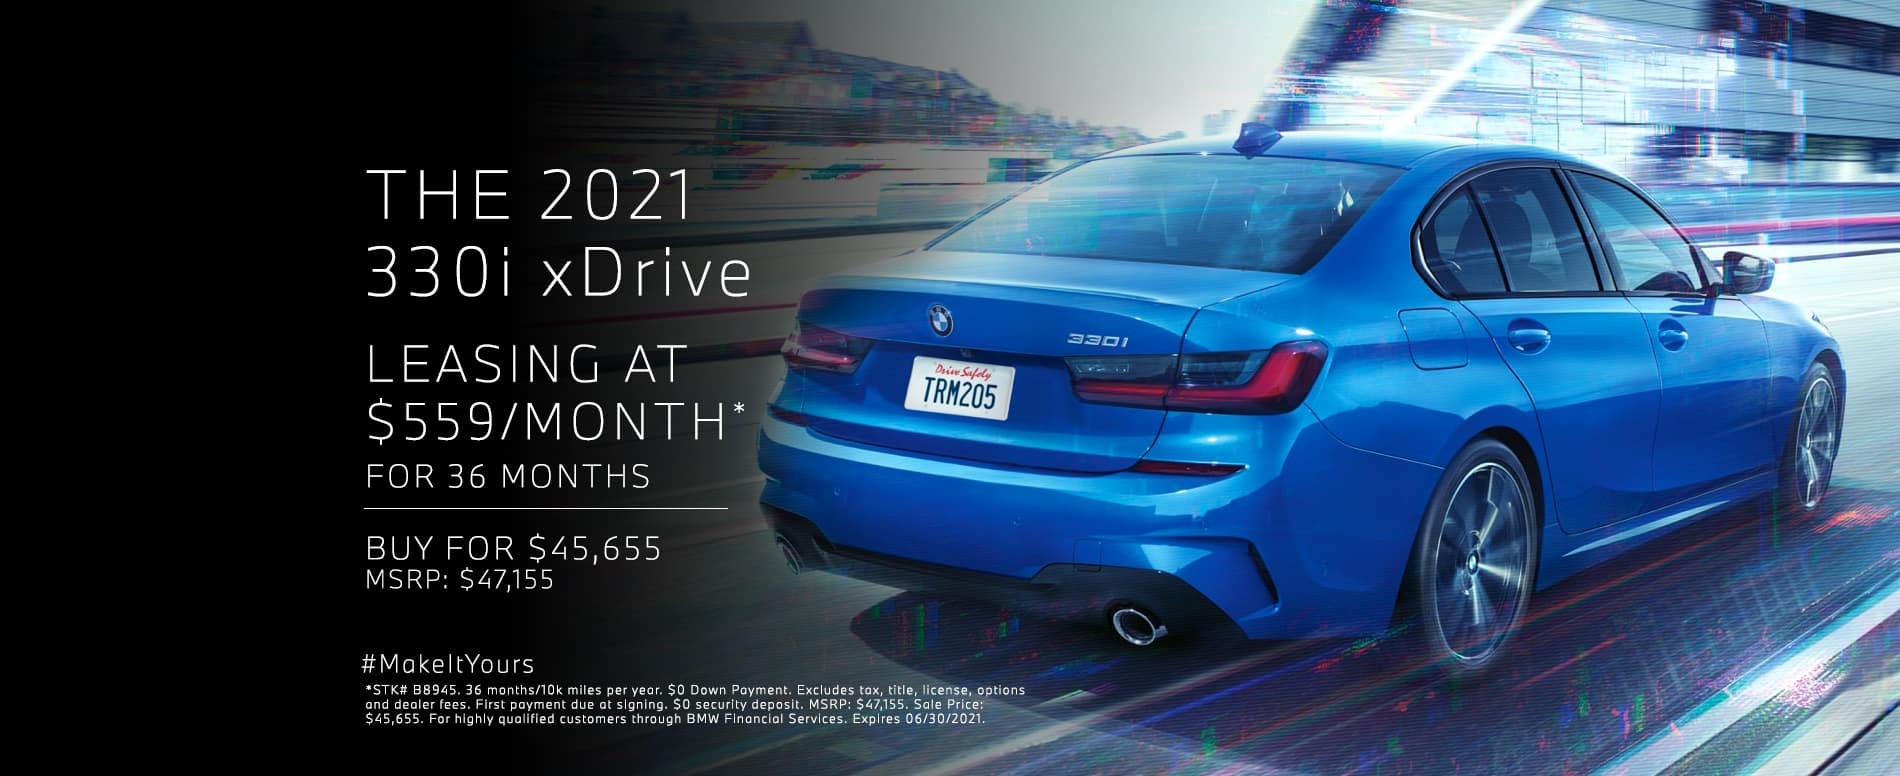 Lease a new 2021 330i xDrive for $559 per month. See dealer for details.